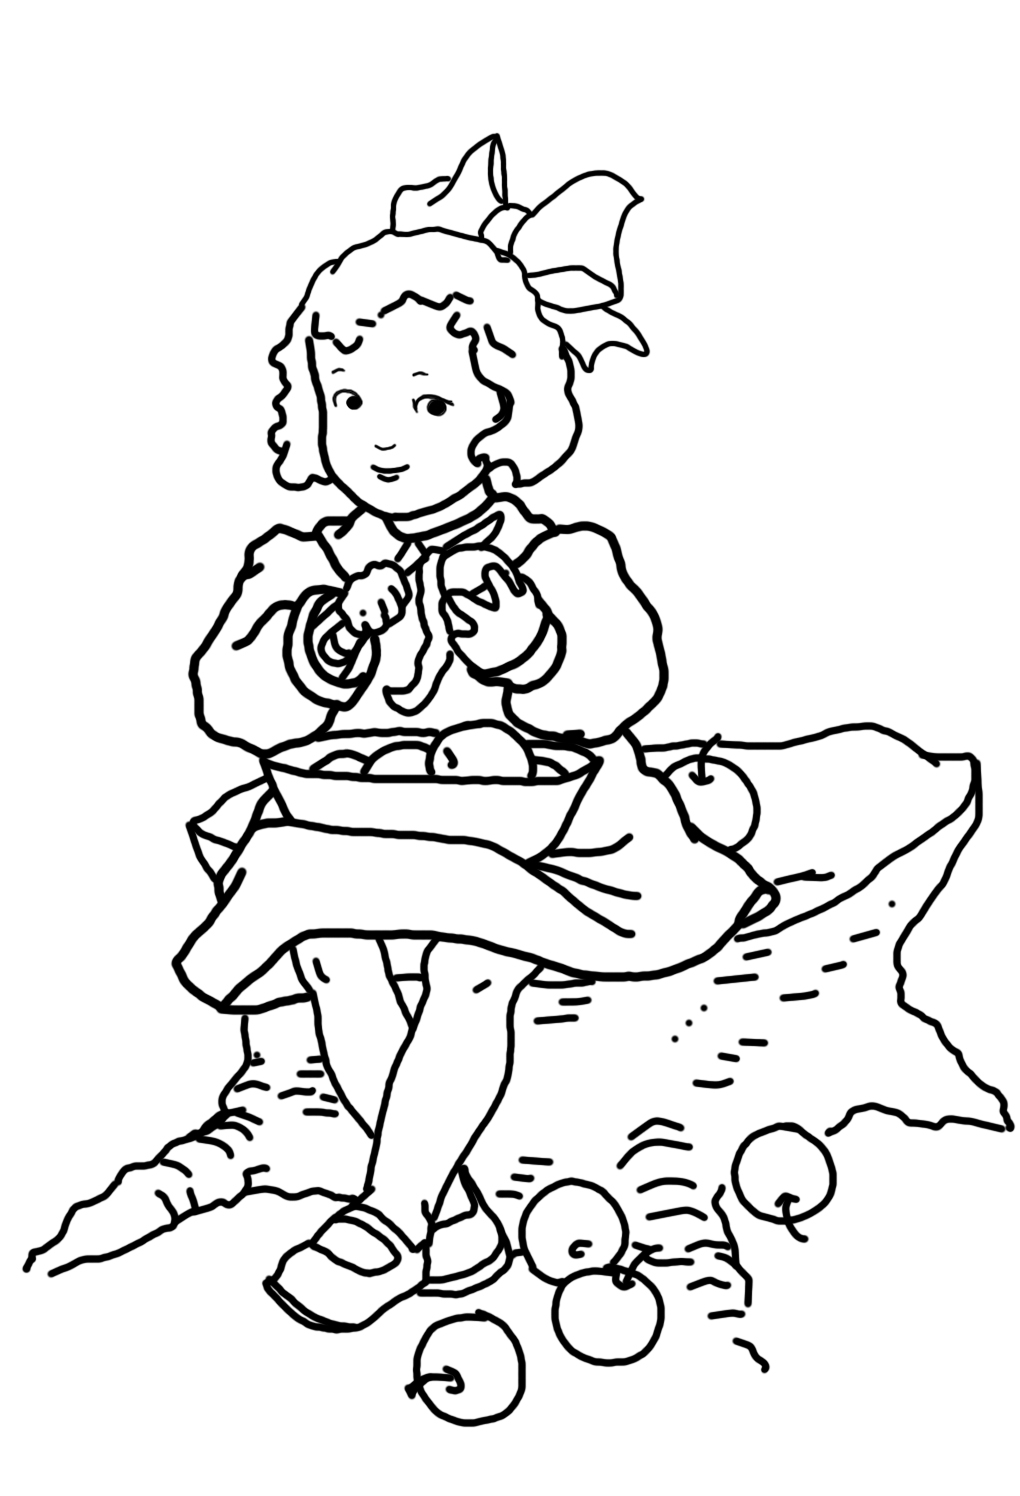 Coloring sheet girl peeling apples